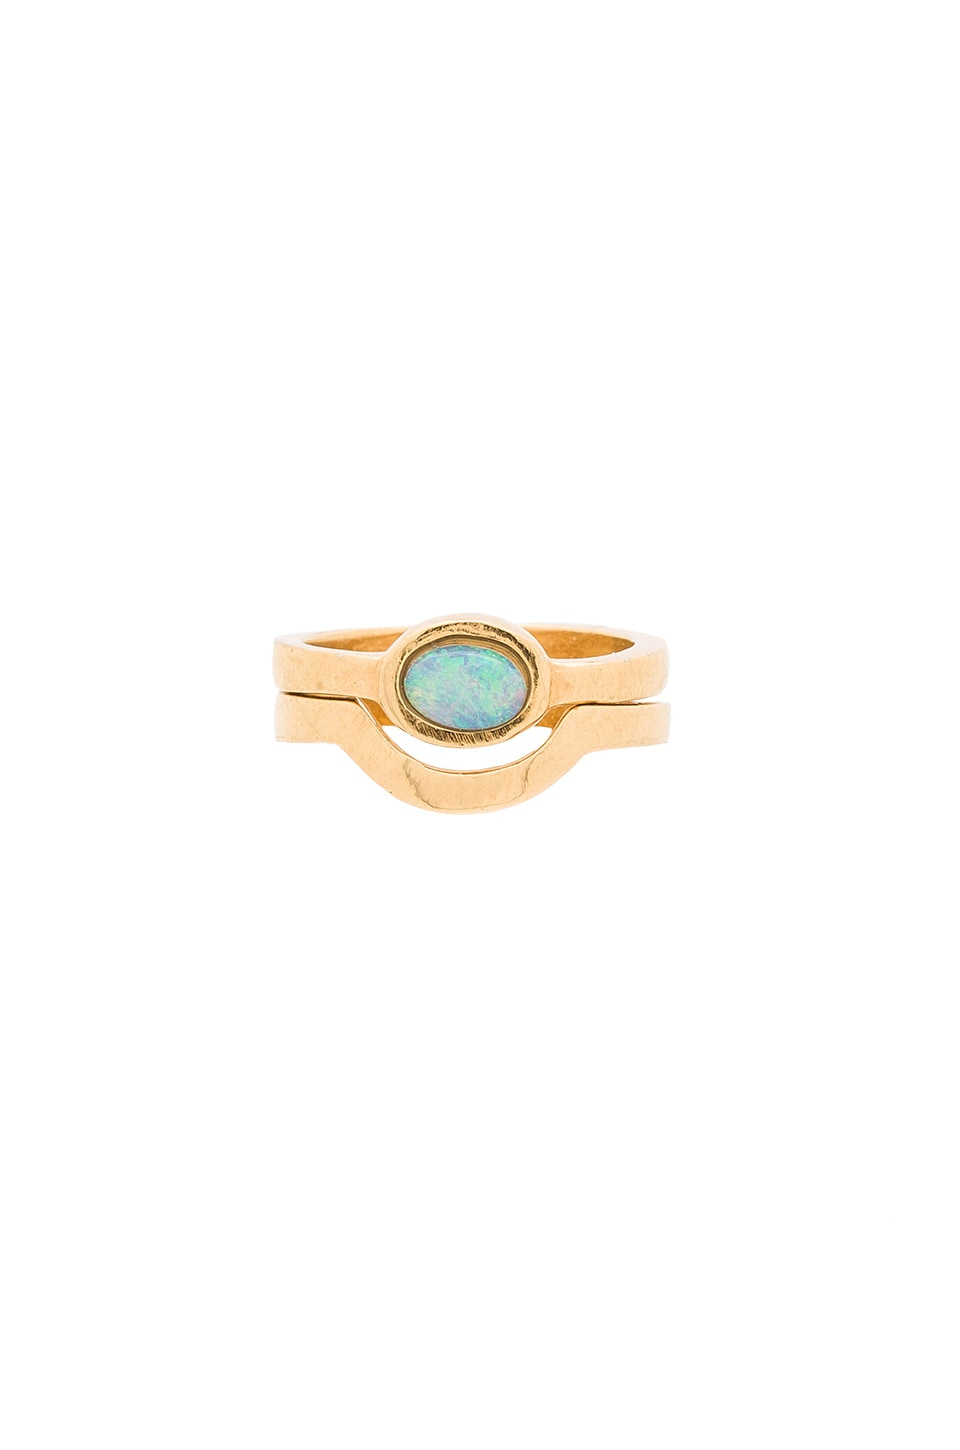 WOLF CIRCUS Opal Ring in 14K Gold Plated